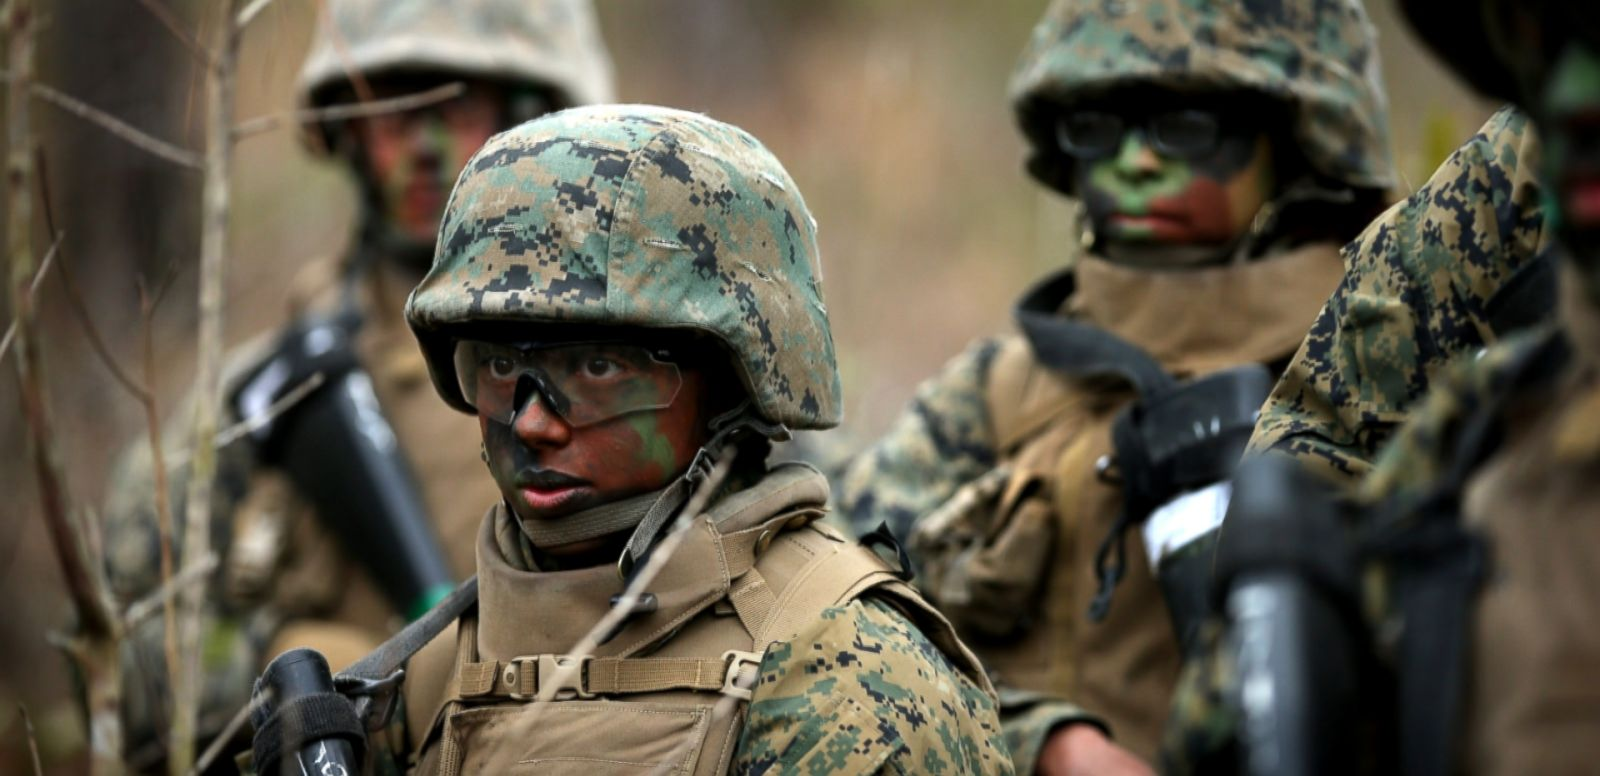 VIDEO: Marine Corps Removes 'Man' from Specialty Titles